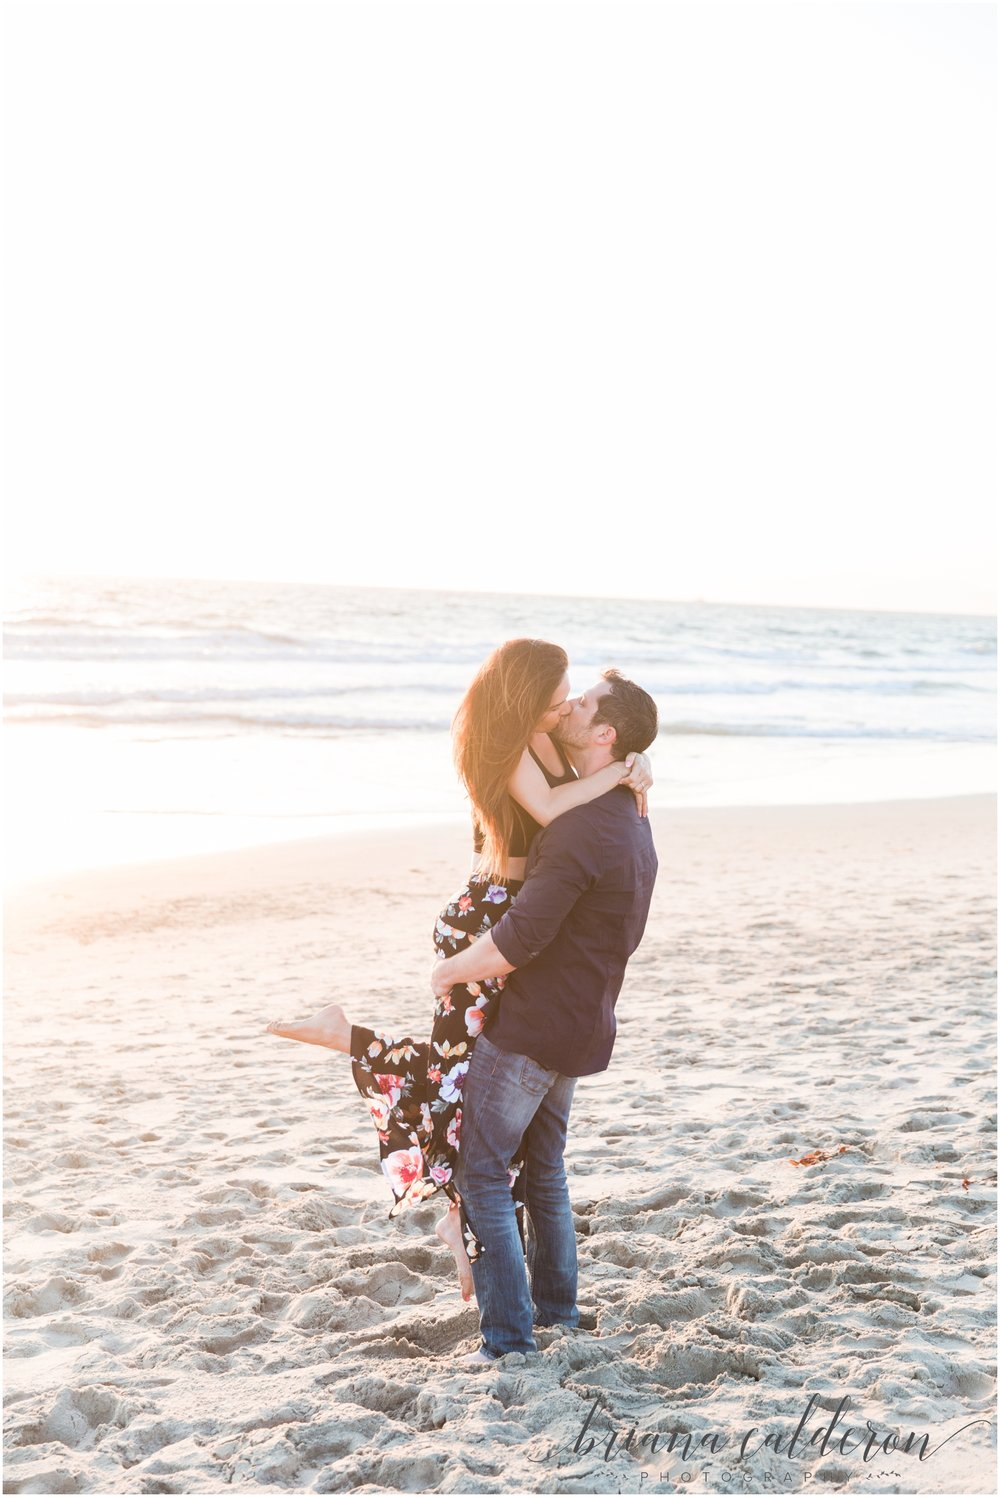 LA Beach Engagement Photos by Briana Calderon Photography_0812.jpg